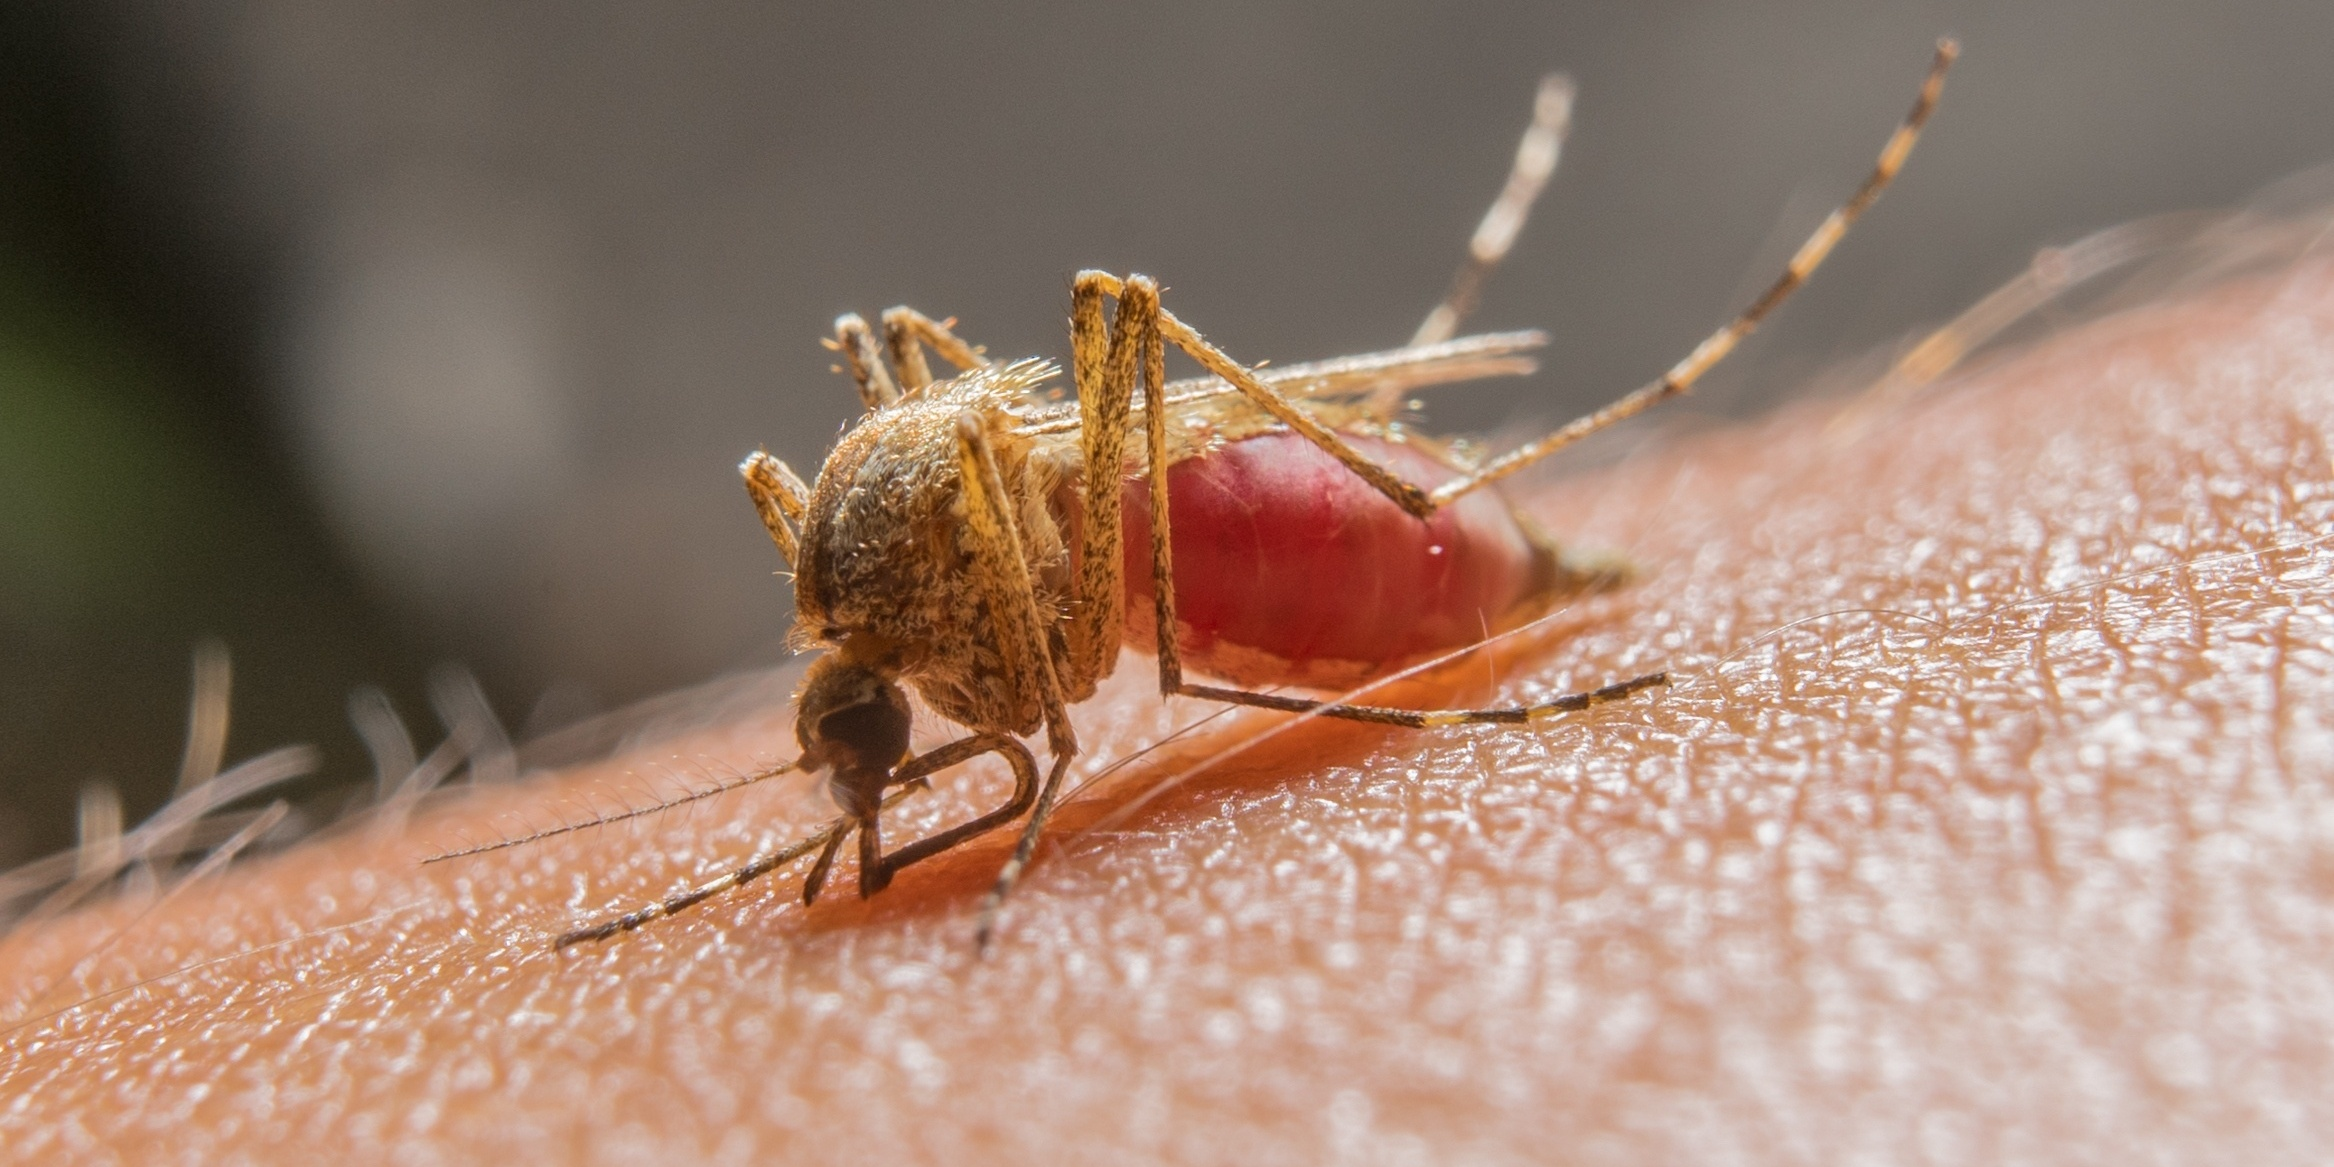 A mosquito using its proboscis.